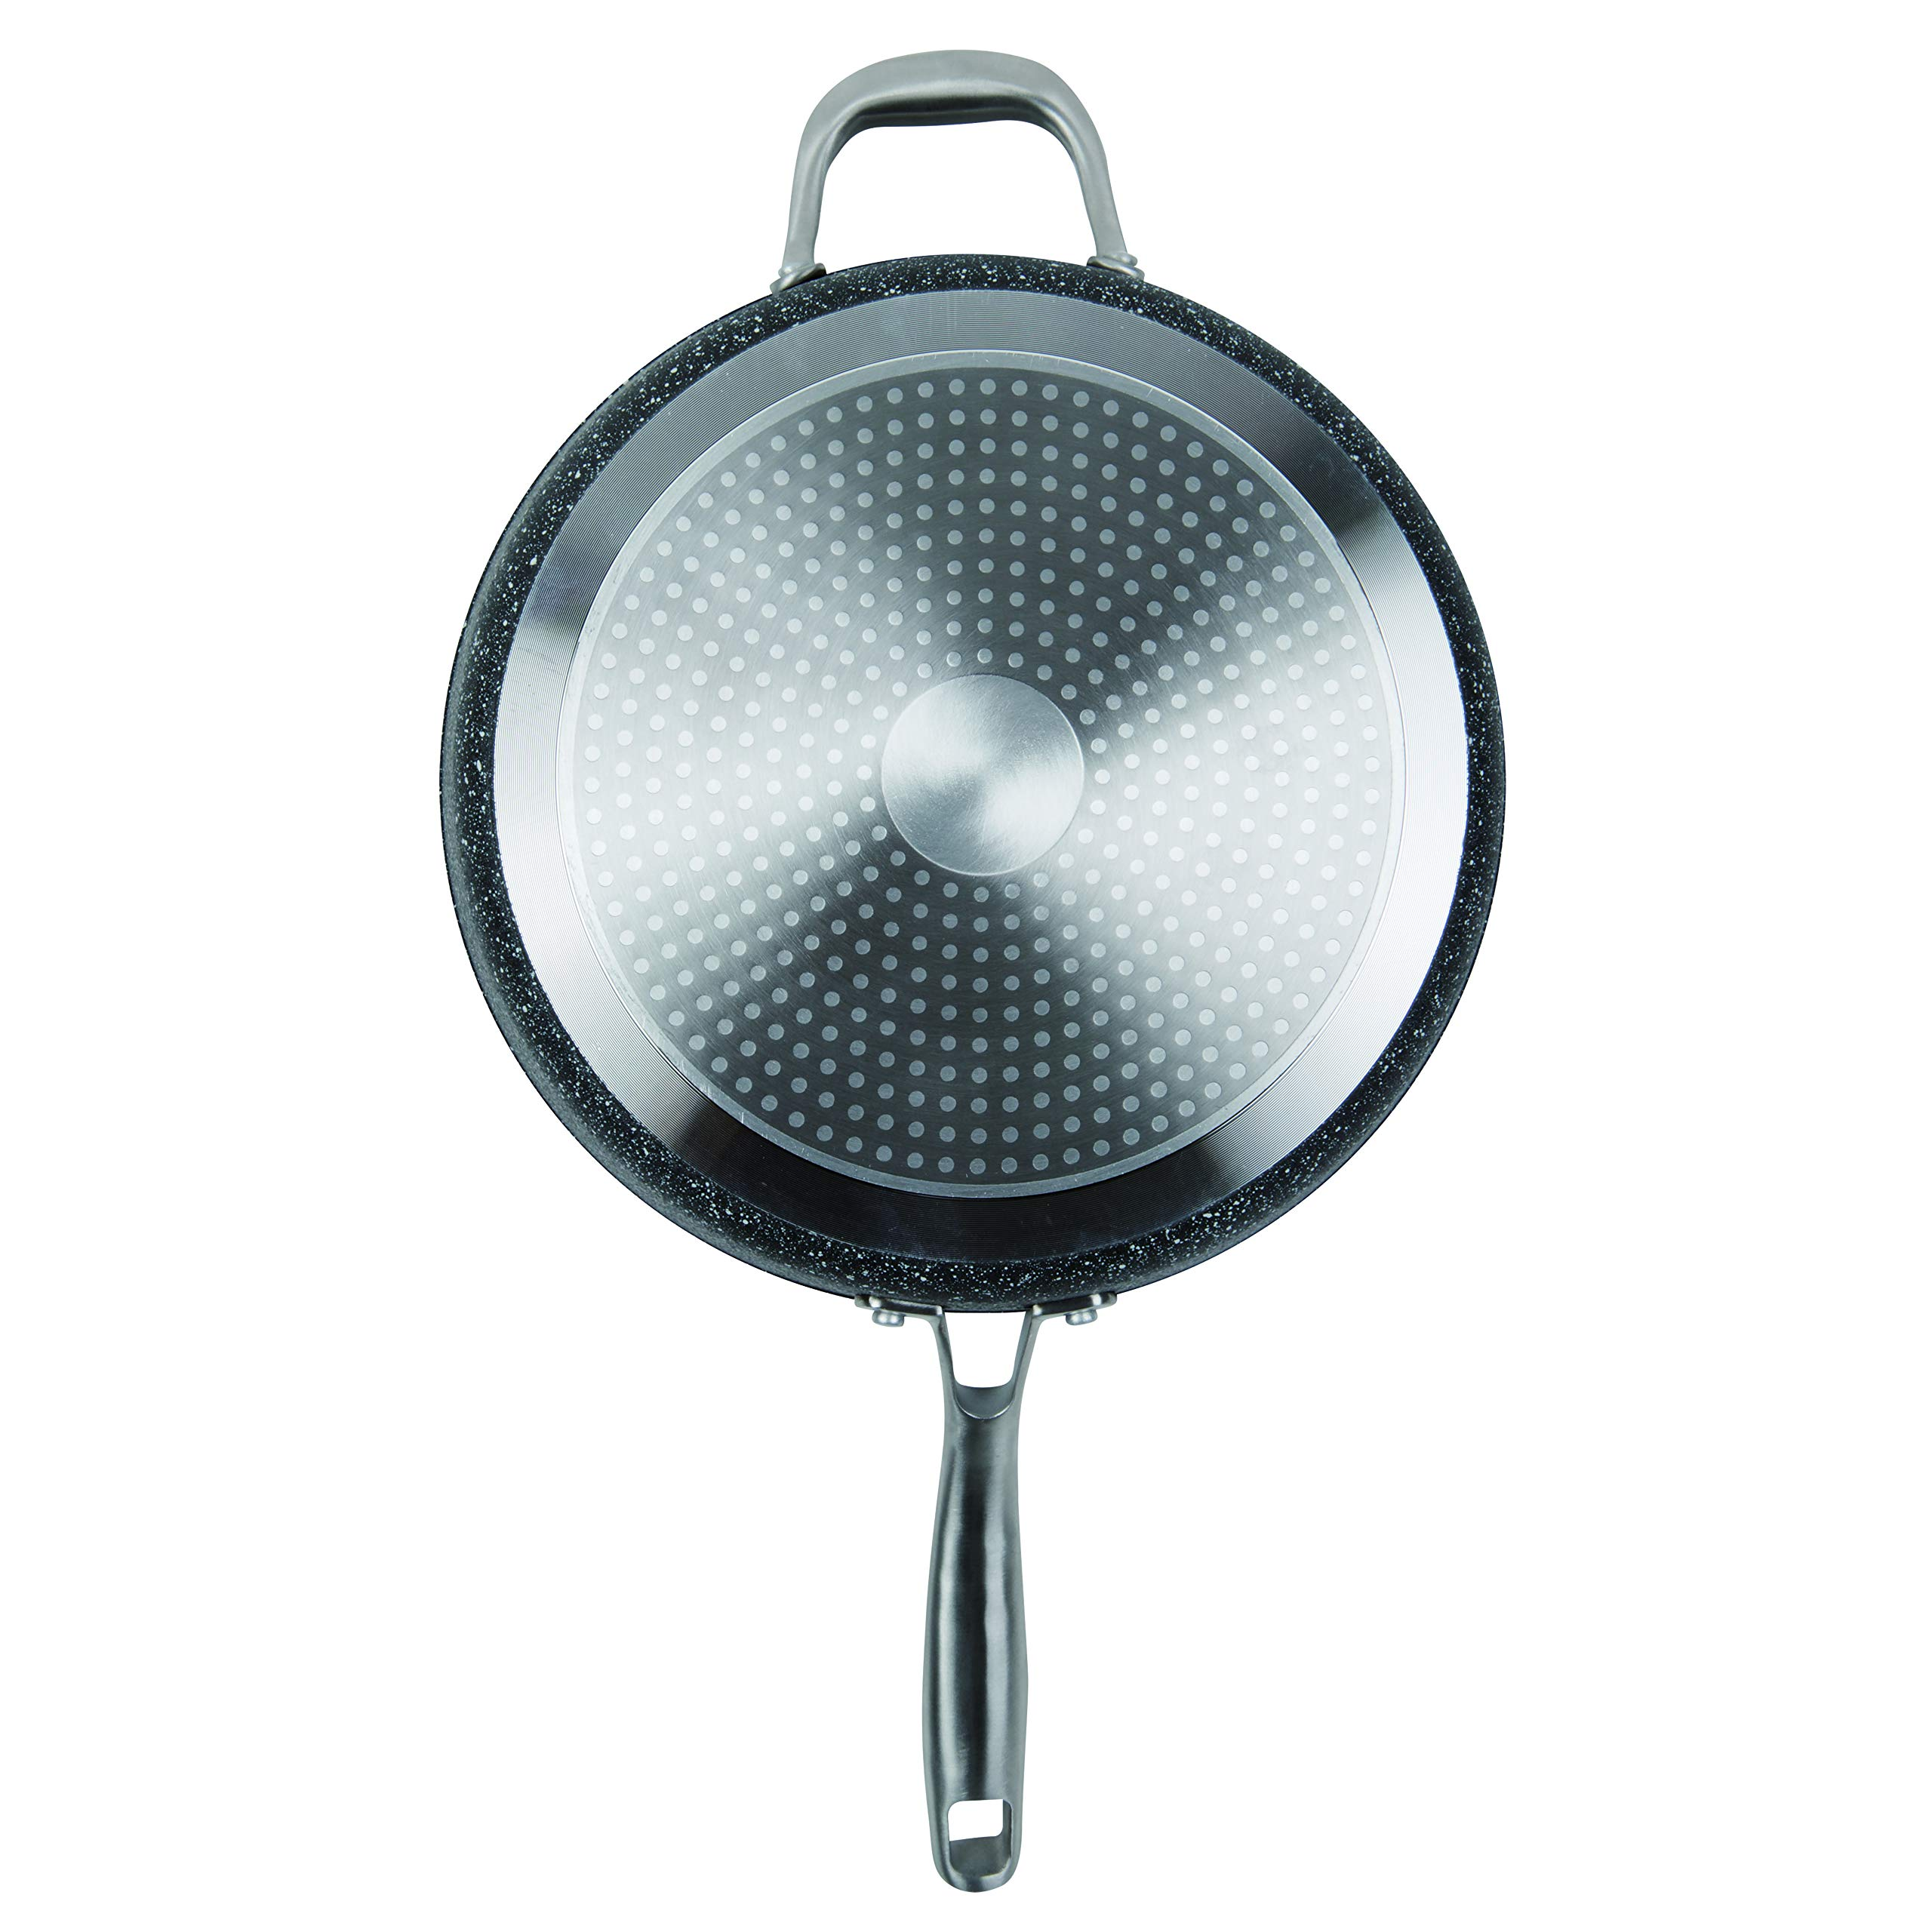 MasterPan Granite Ultra Non-Stick Cast Aluminum Sauté Pan with Glass Lid, Non-stick Frying Pan Omelette Pan, 11'', Grey, MP-134 by Master Pan (Image #5)